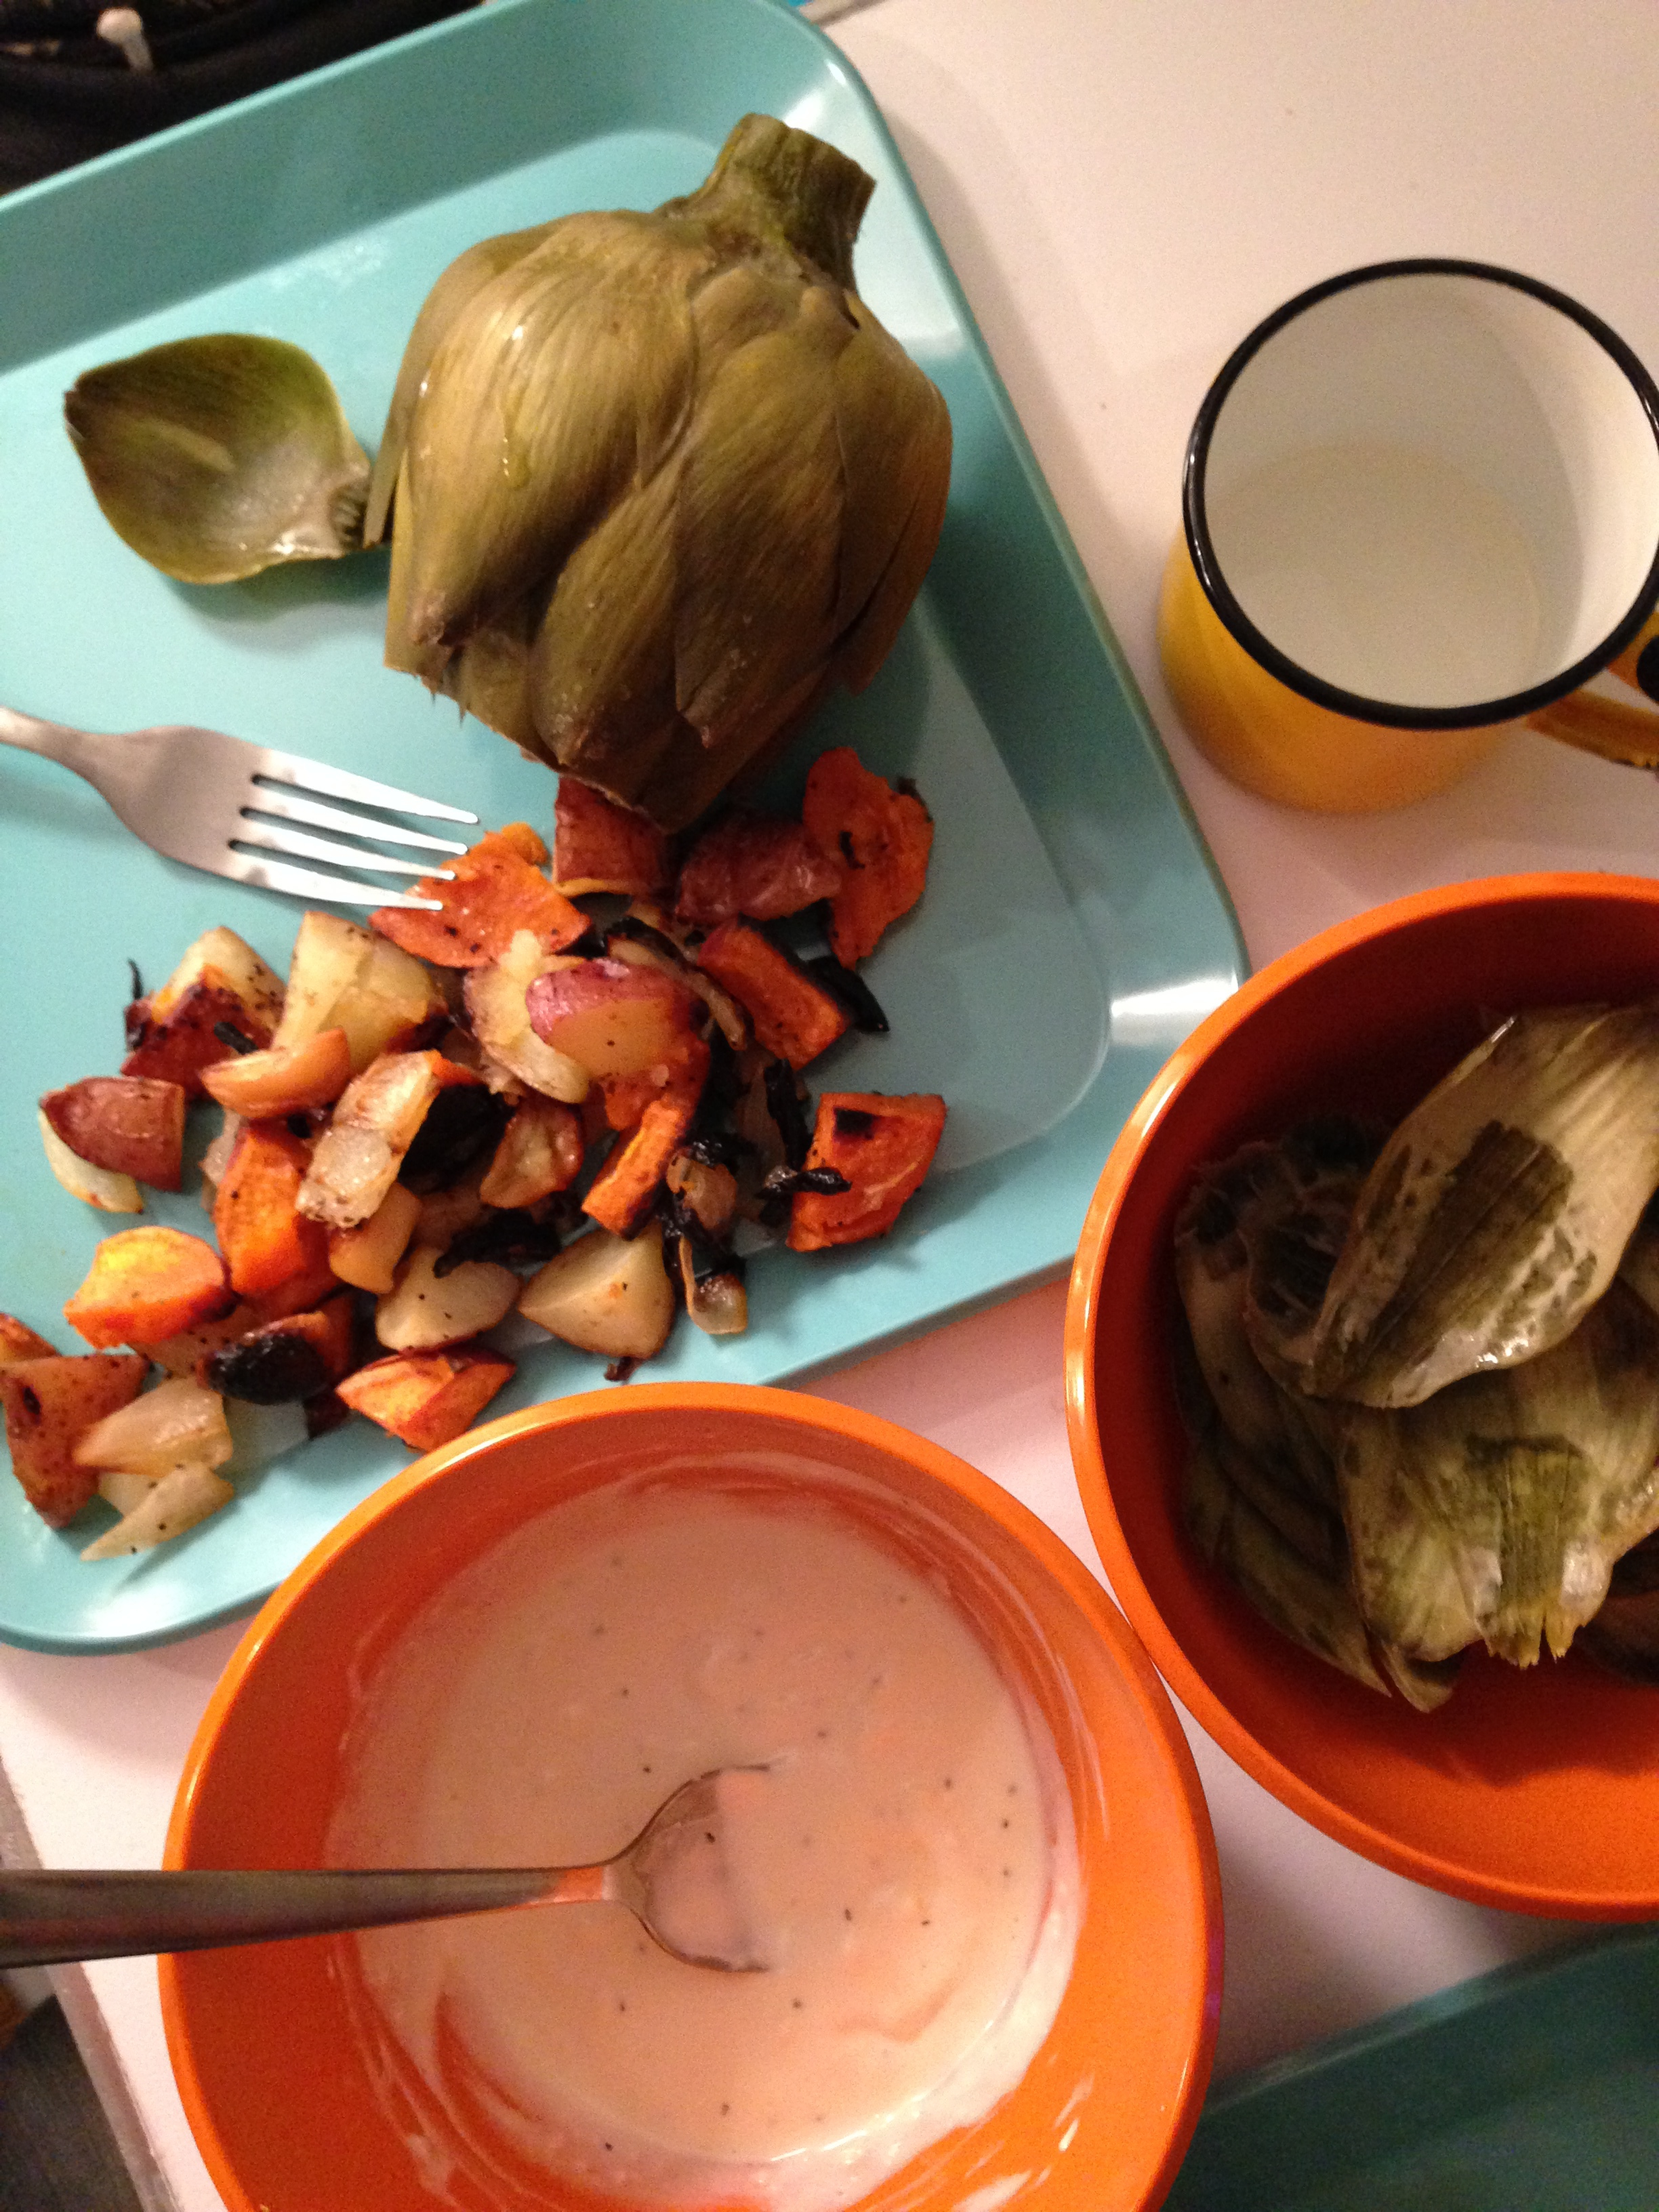 Before going home to an awesome dinner.  Artichokes are my favorite!